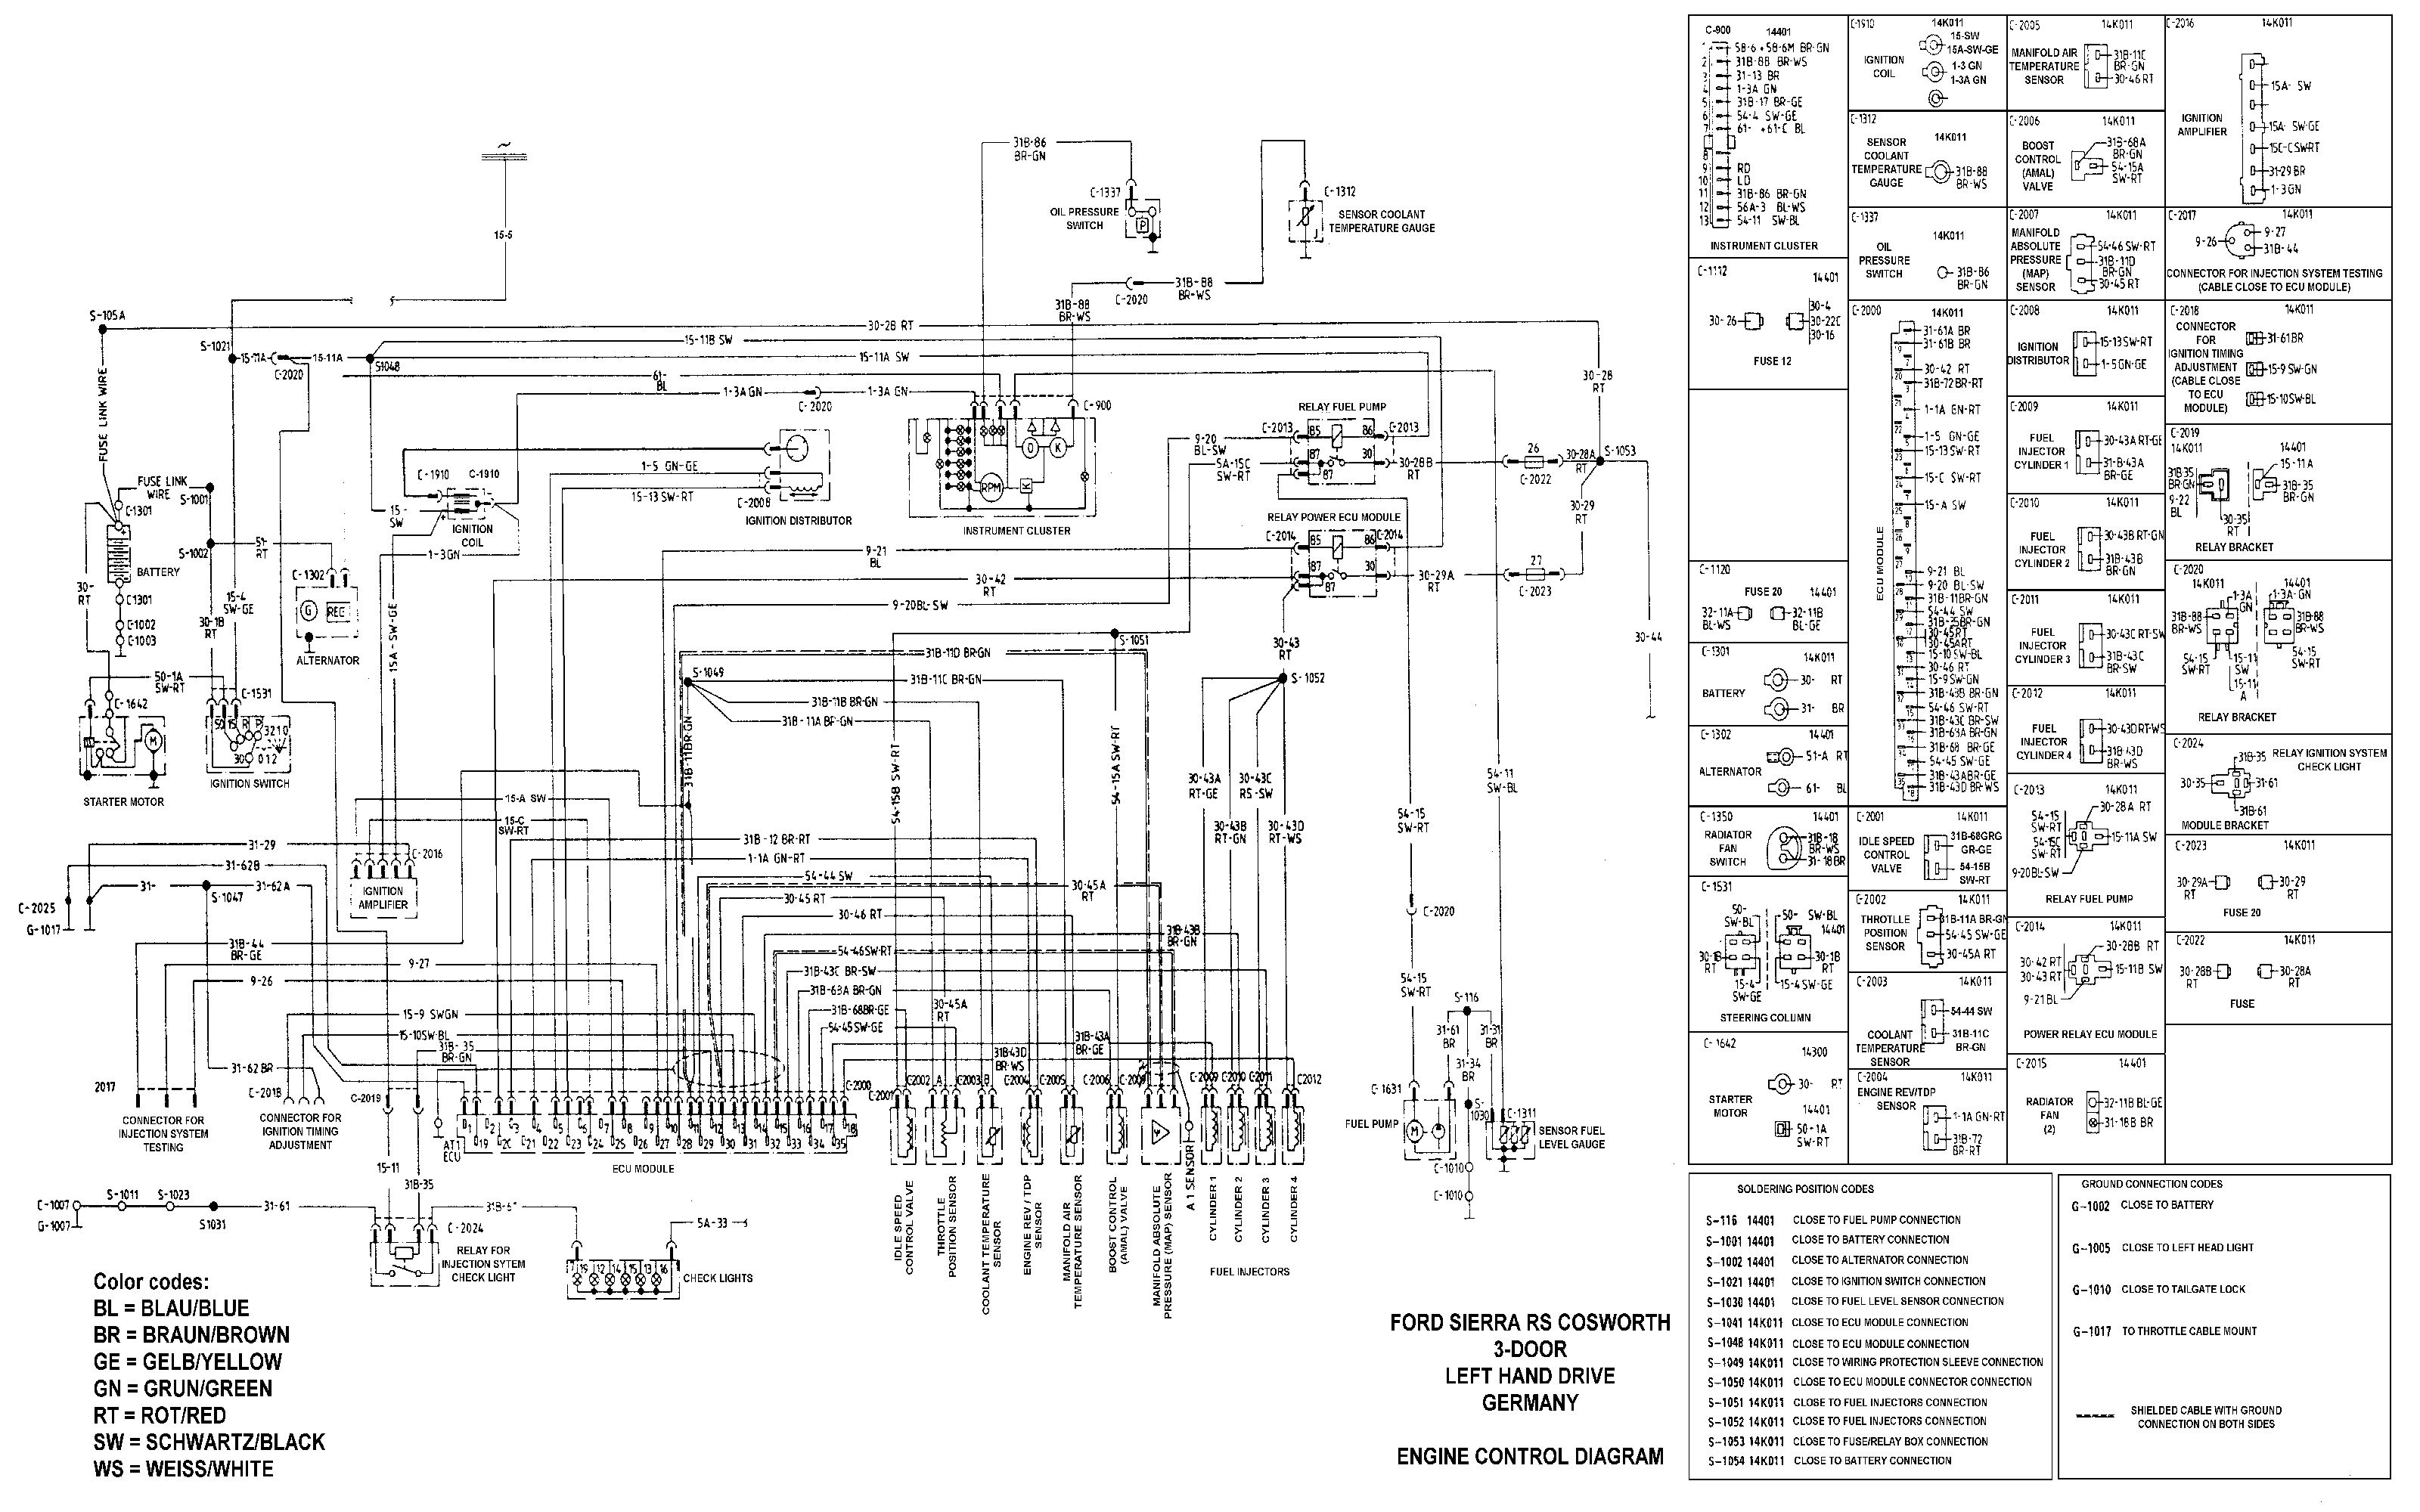 Ford Mondeo Engine Diagram My Wiring DIagram